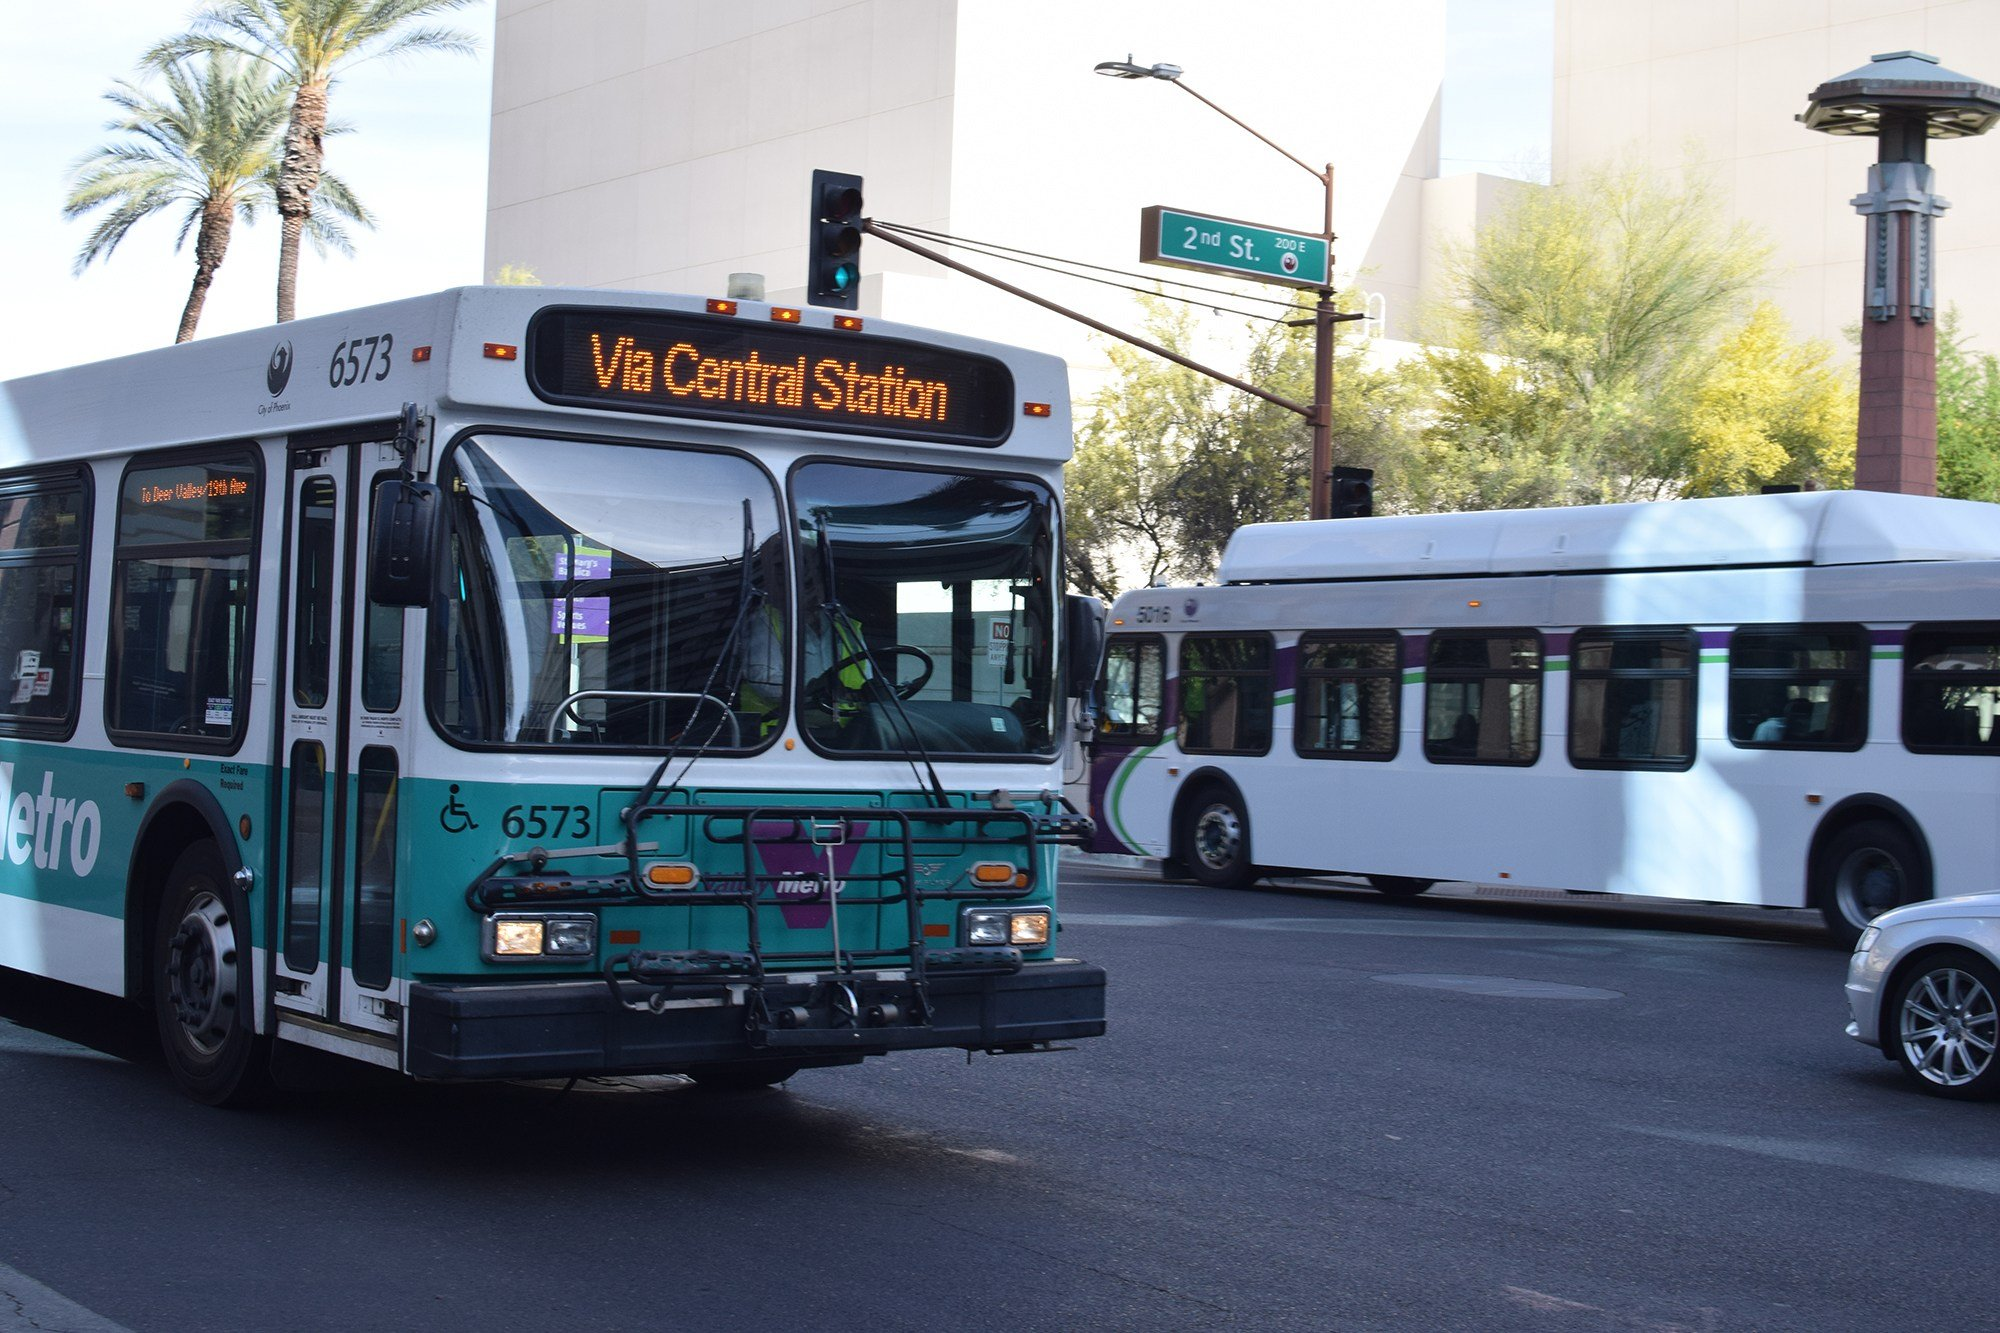 Public transit officials said Transportation Department budget cuts outlined by the Trump administration could have a severe economic impact. (Source: Arren Kimbel-Sannit/Cronkite News)